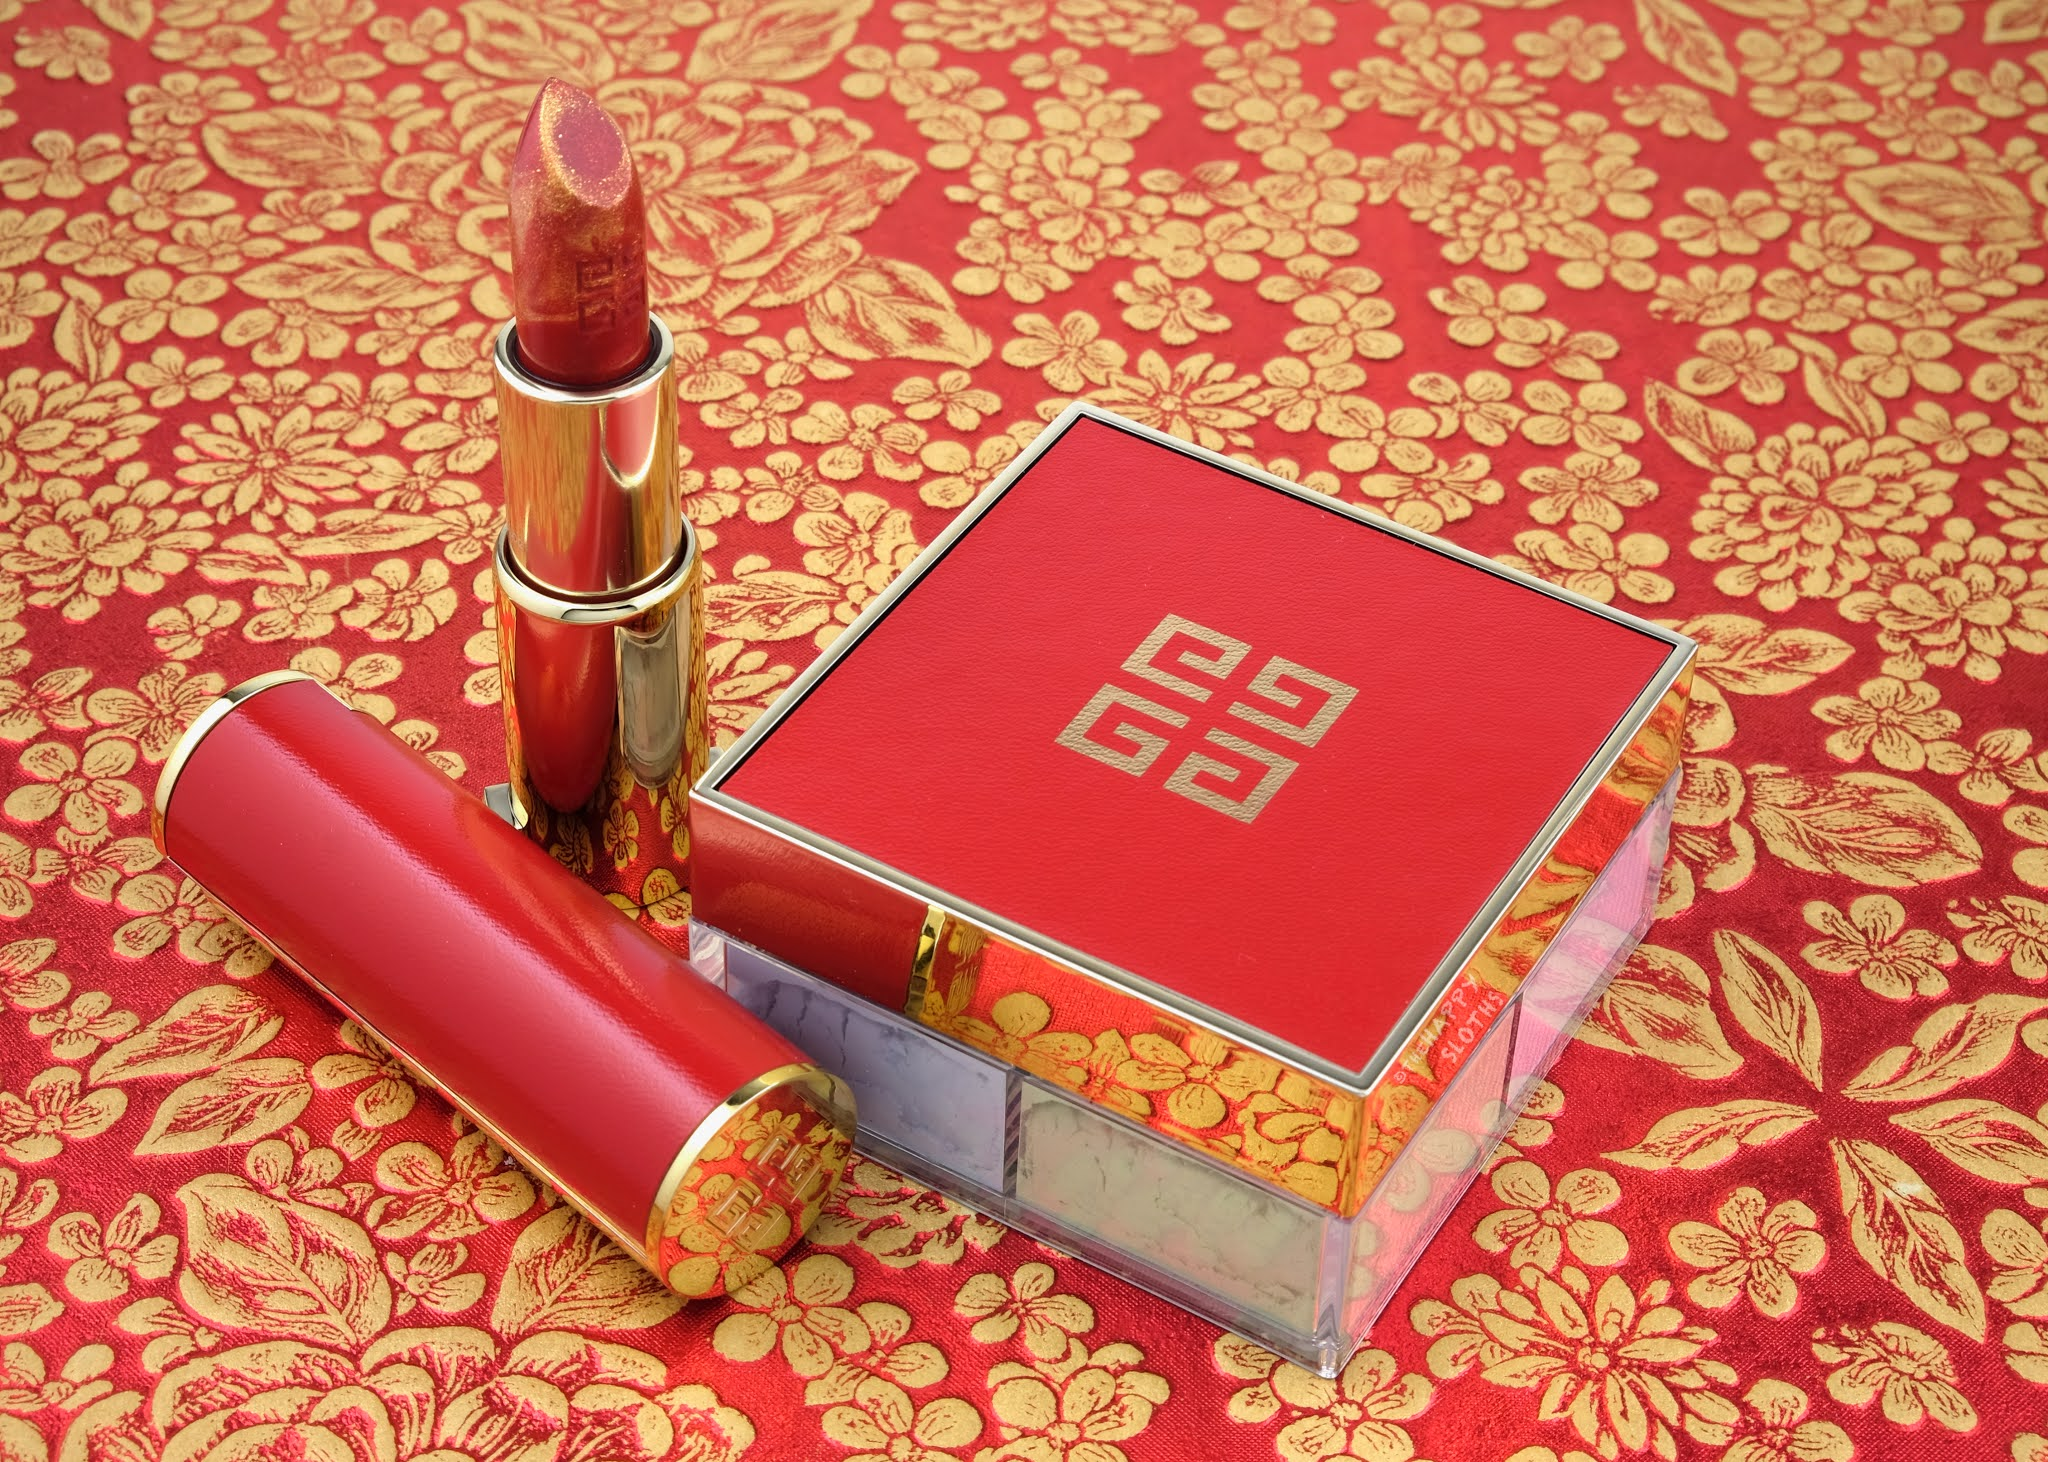 Givenchy | Lunar New Year 2021 Collection: Review and Swatches